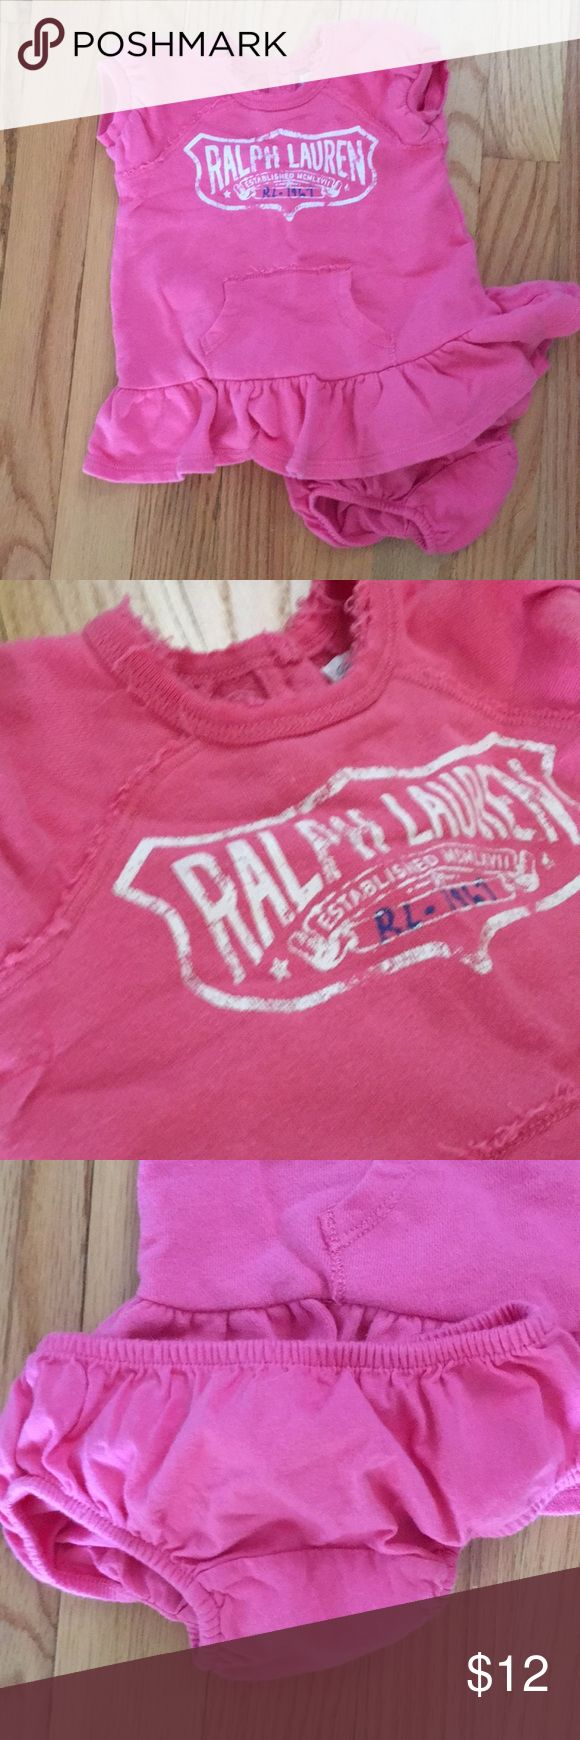 210 Ralph Lauren Baby Girl Dress Adorable Pink Not As Vibrant Pink As In Picture Dress Size